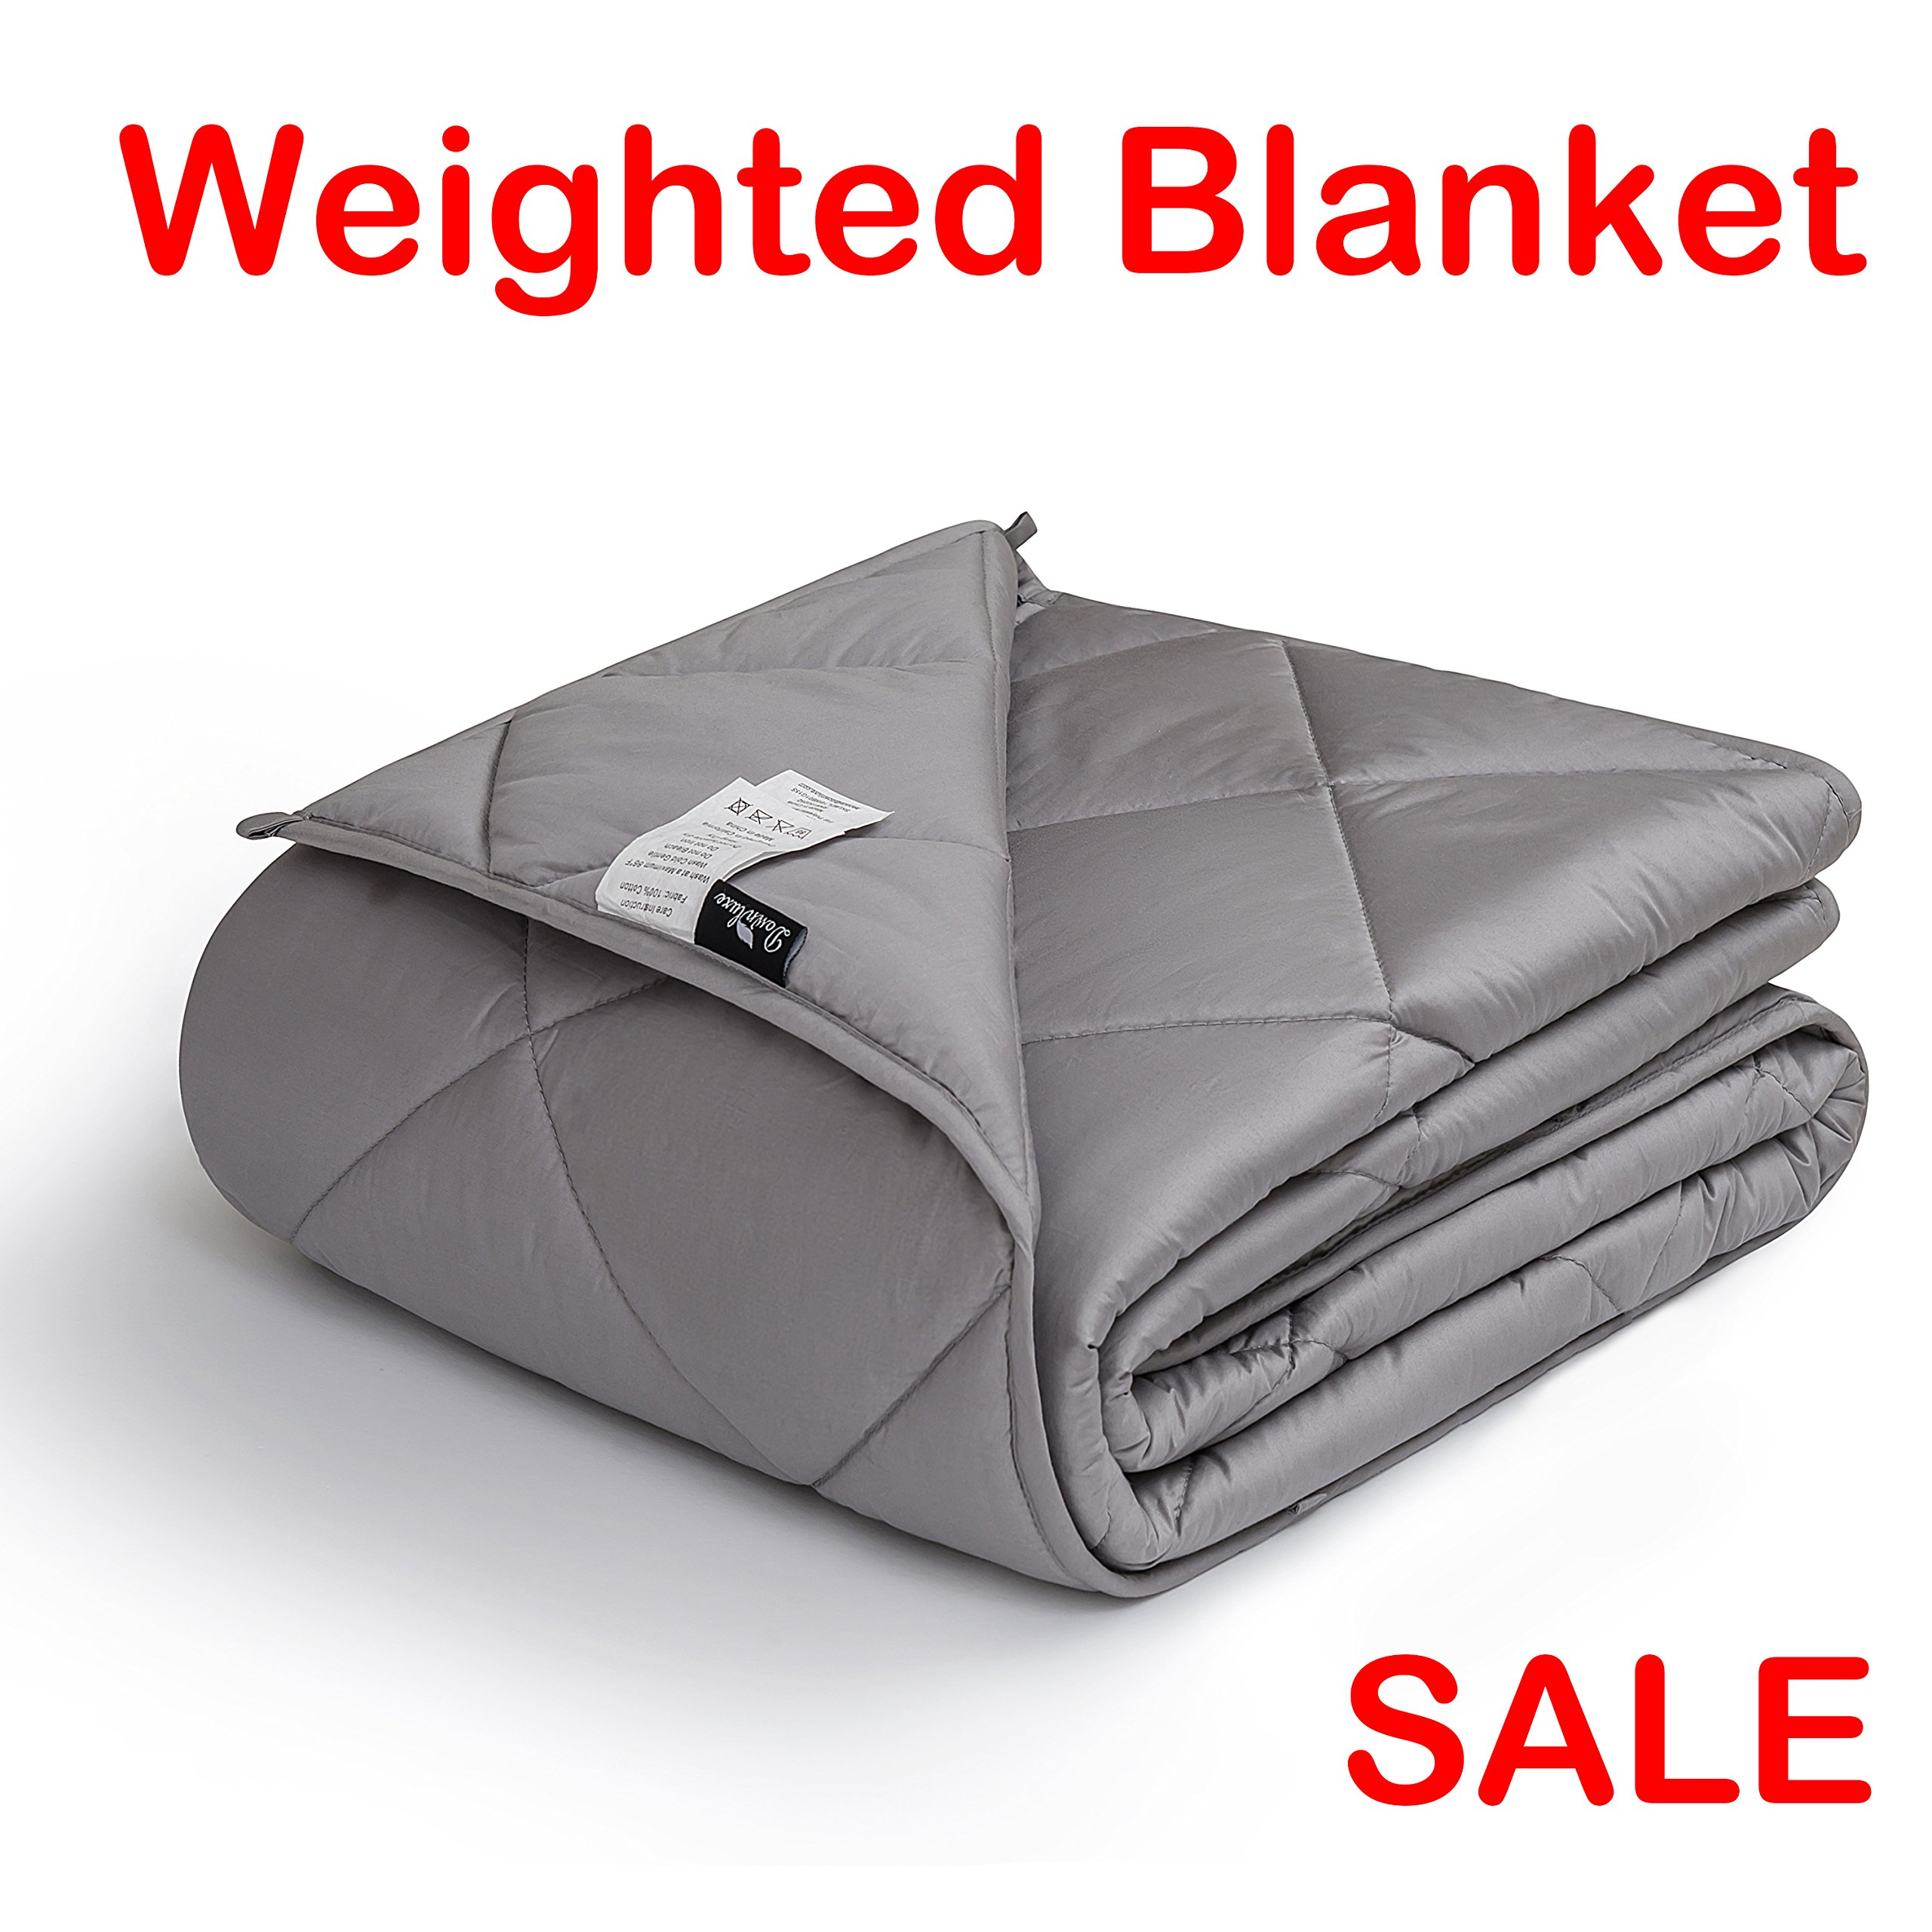 downluxe Weighted Blanket for Adult Woman and Man - Perfect for Anxiety, Autism, and Sensory Relief - Fits King Size Beds - Grey (60''x80'', 15 lbs)